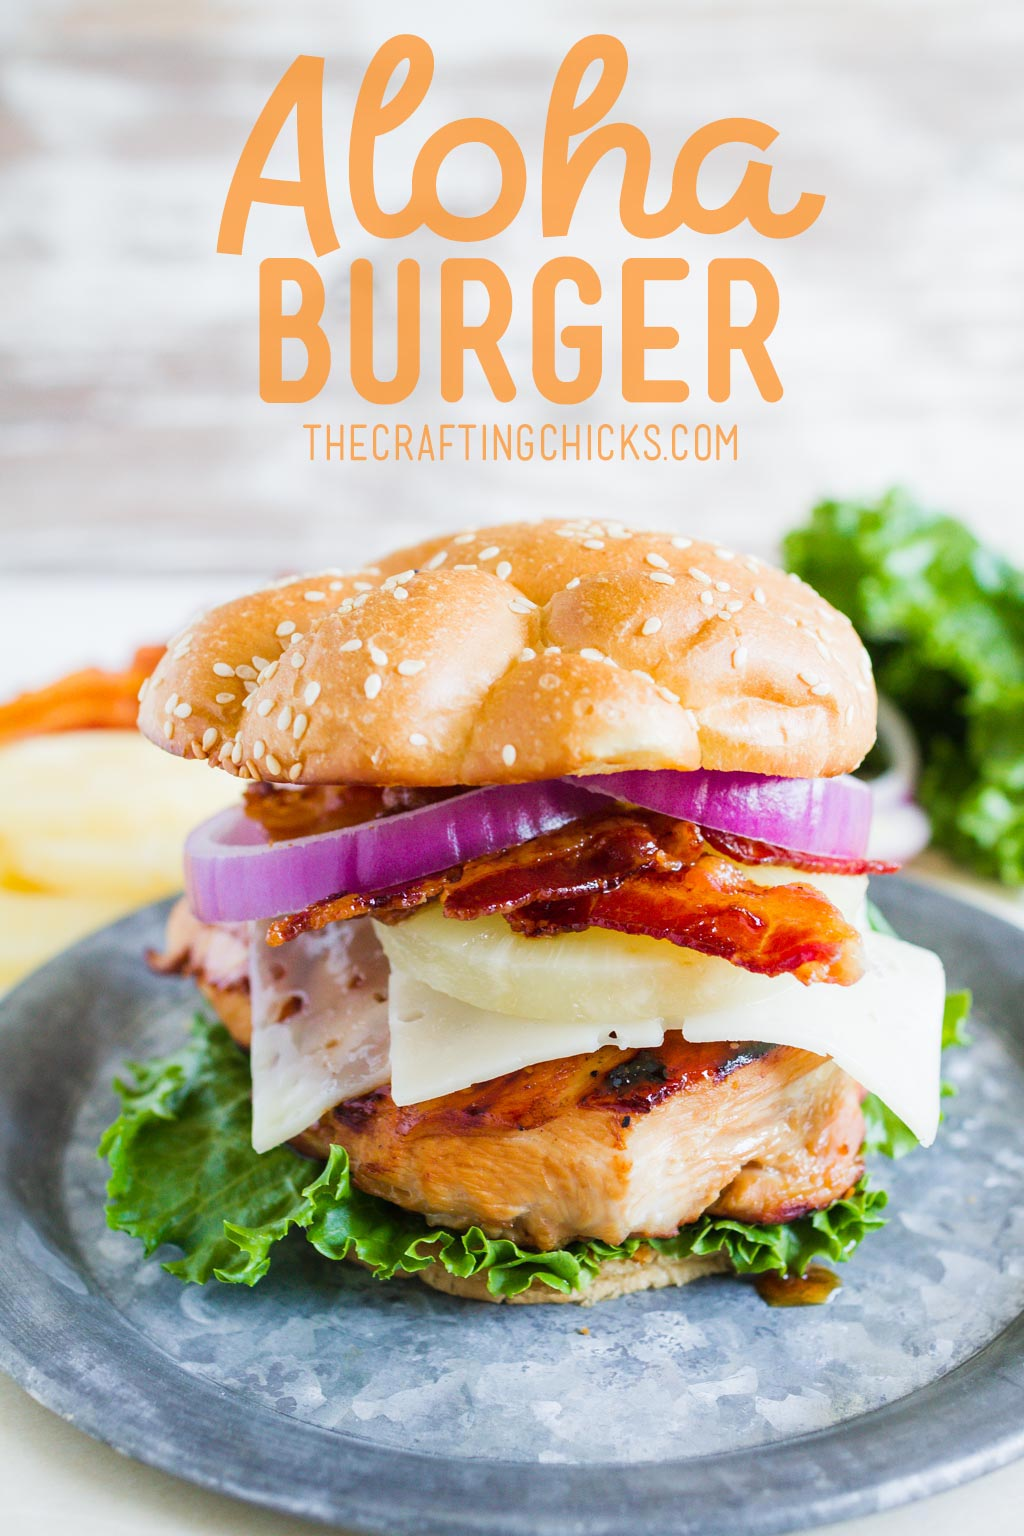 Aloha Burger Recipe The Crafting Chicks